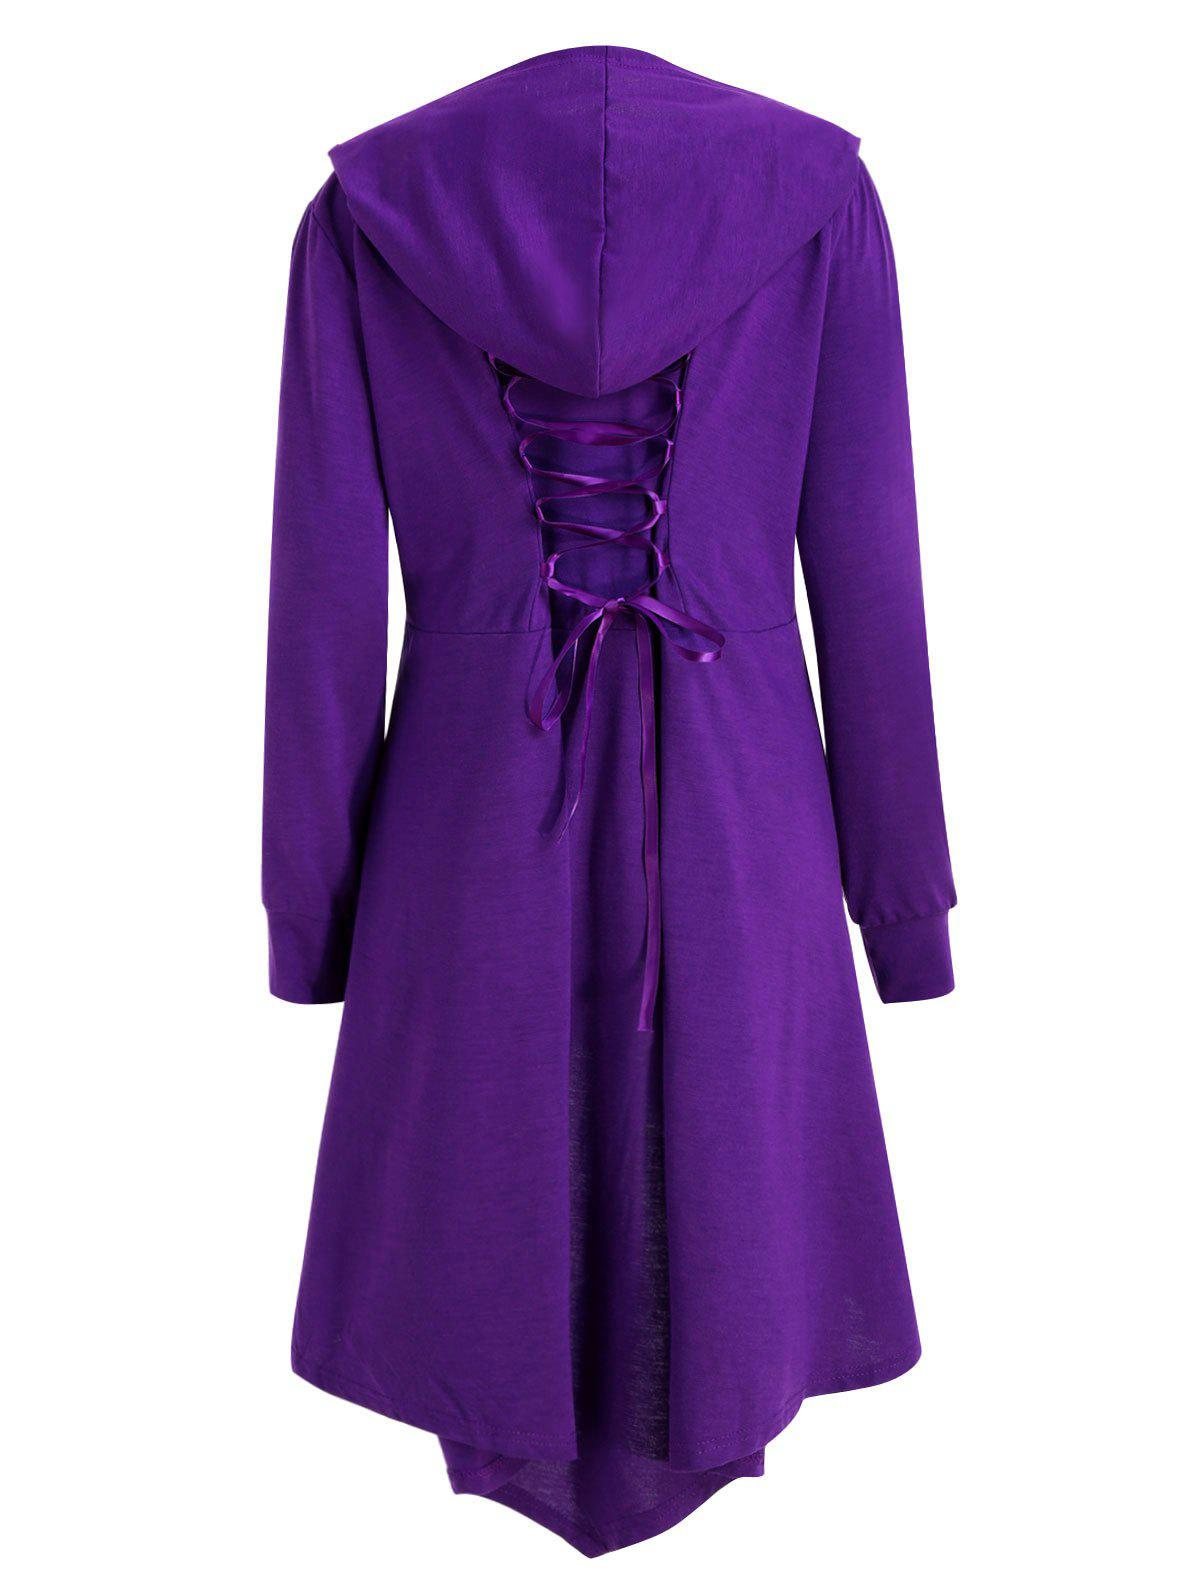 Plus Size Maxi High Low Hooded CoatWOMEN<br><br>Size: 3XL; Color: PURPLE; Clothes Type: Others; Material: Polyester; Type: Asymmetric Length; Shirt Length: X-Long; Sleeve Length: Full; Collar: Hooded; Pattern Type: Solid; Style: Fashion; Season: Fall,Winter; Weight: 0.5200kg; Package Contents: 1 x Coat;